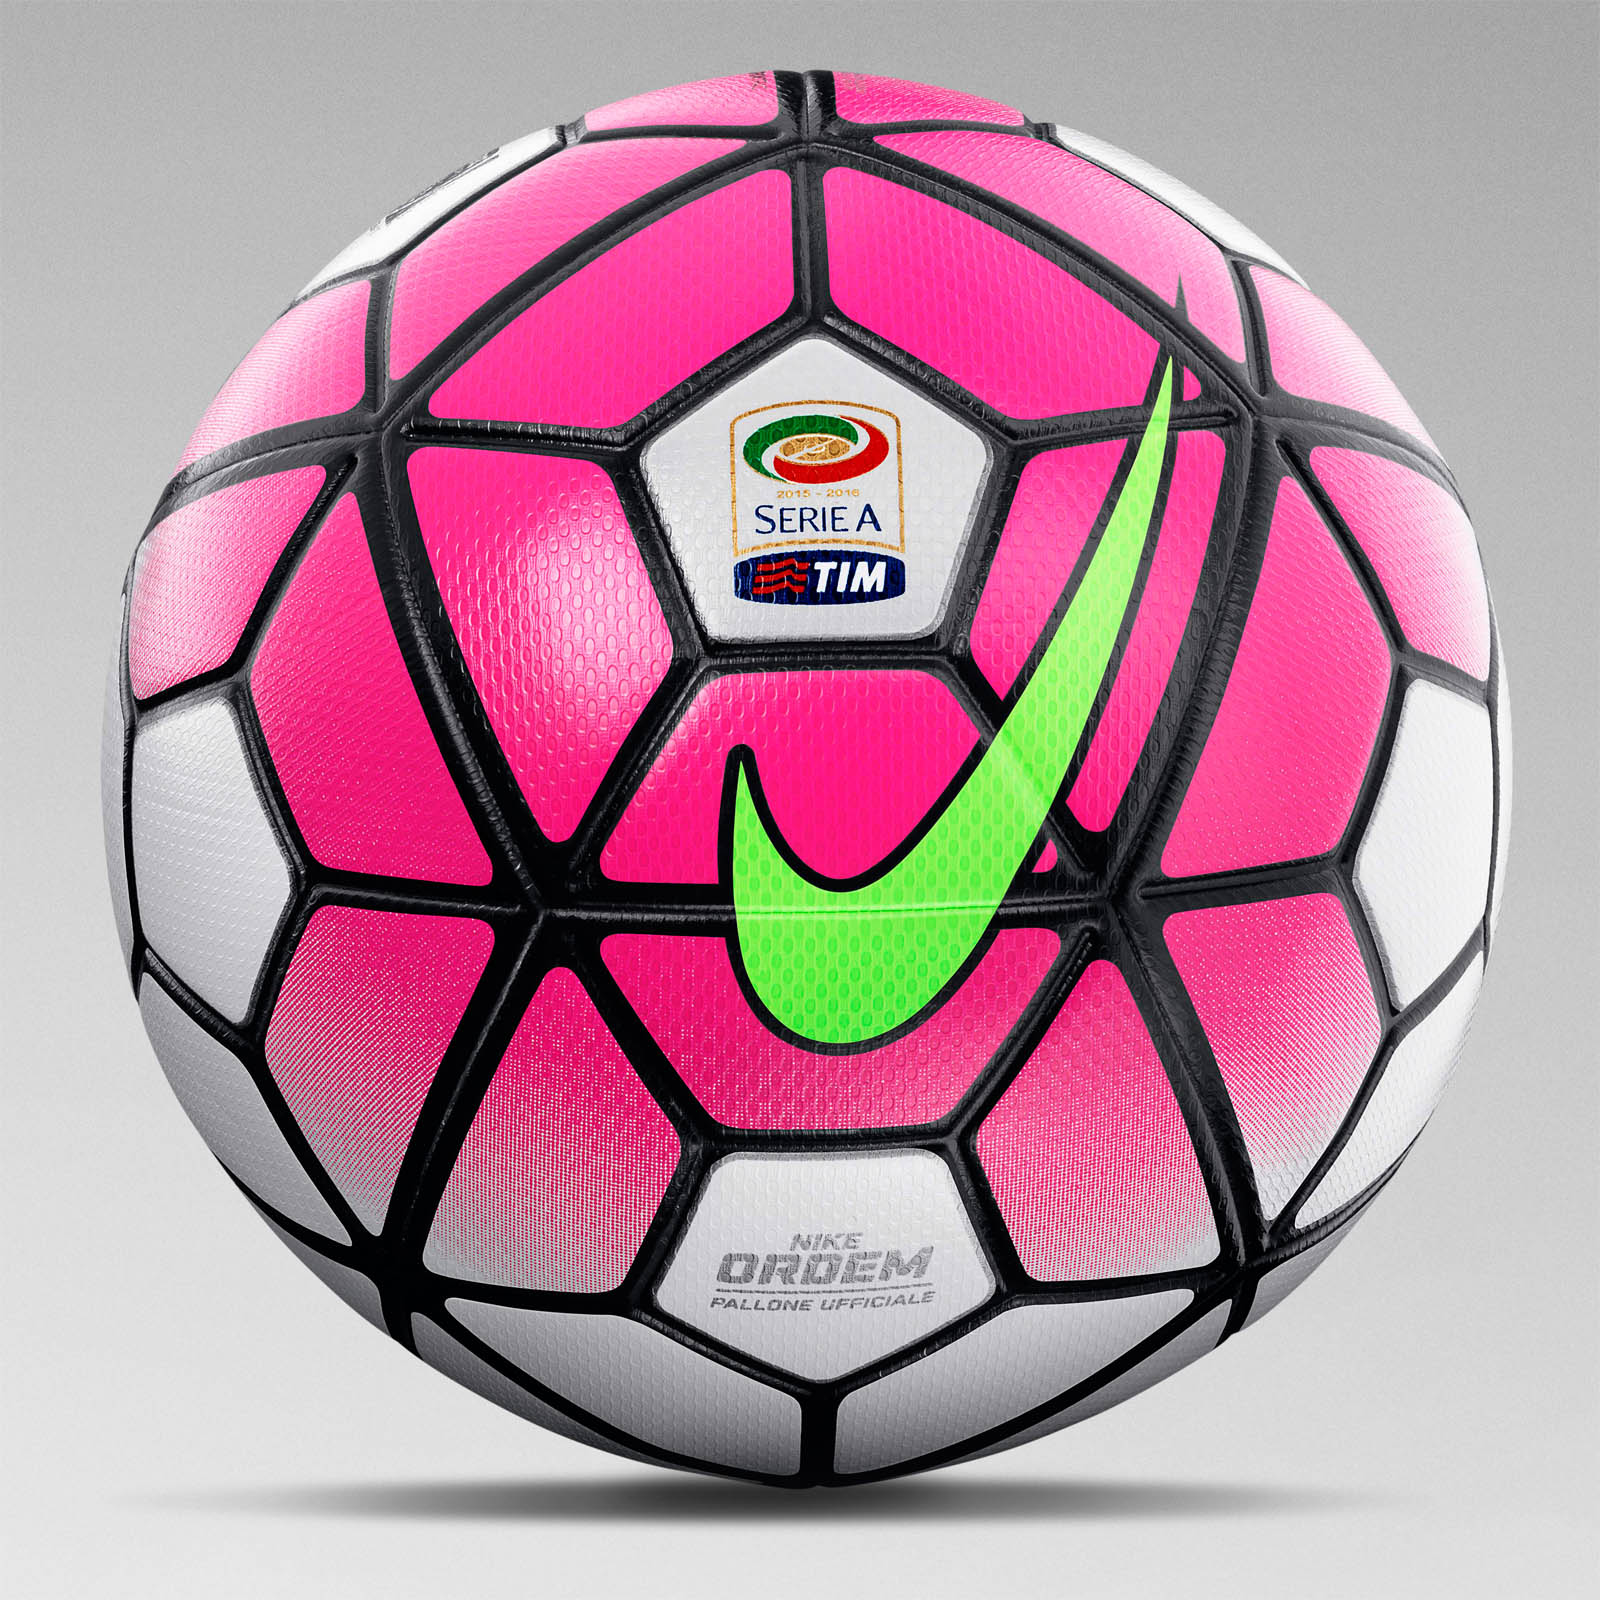 Serie A 15 16 Nike Ordem Ball Released Forza27